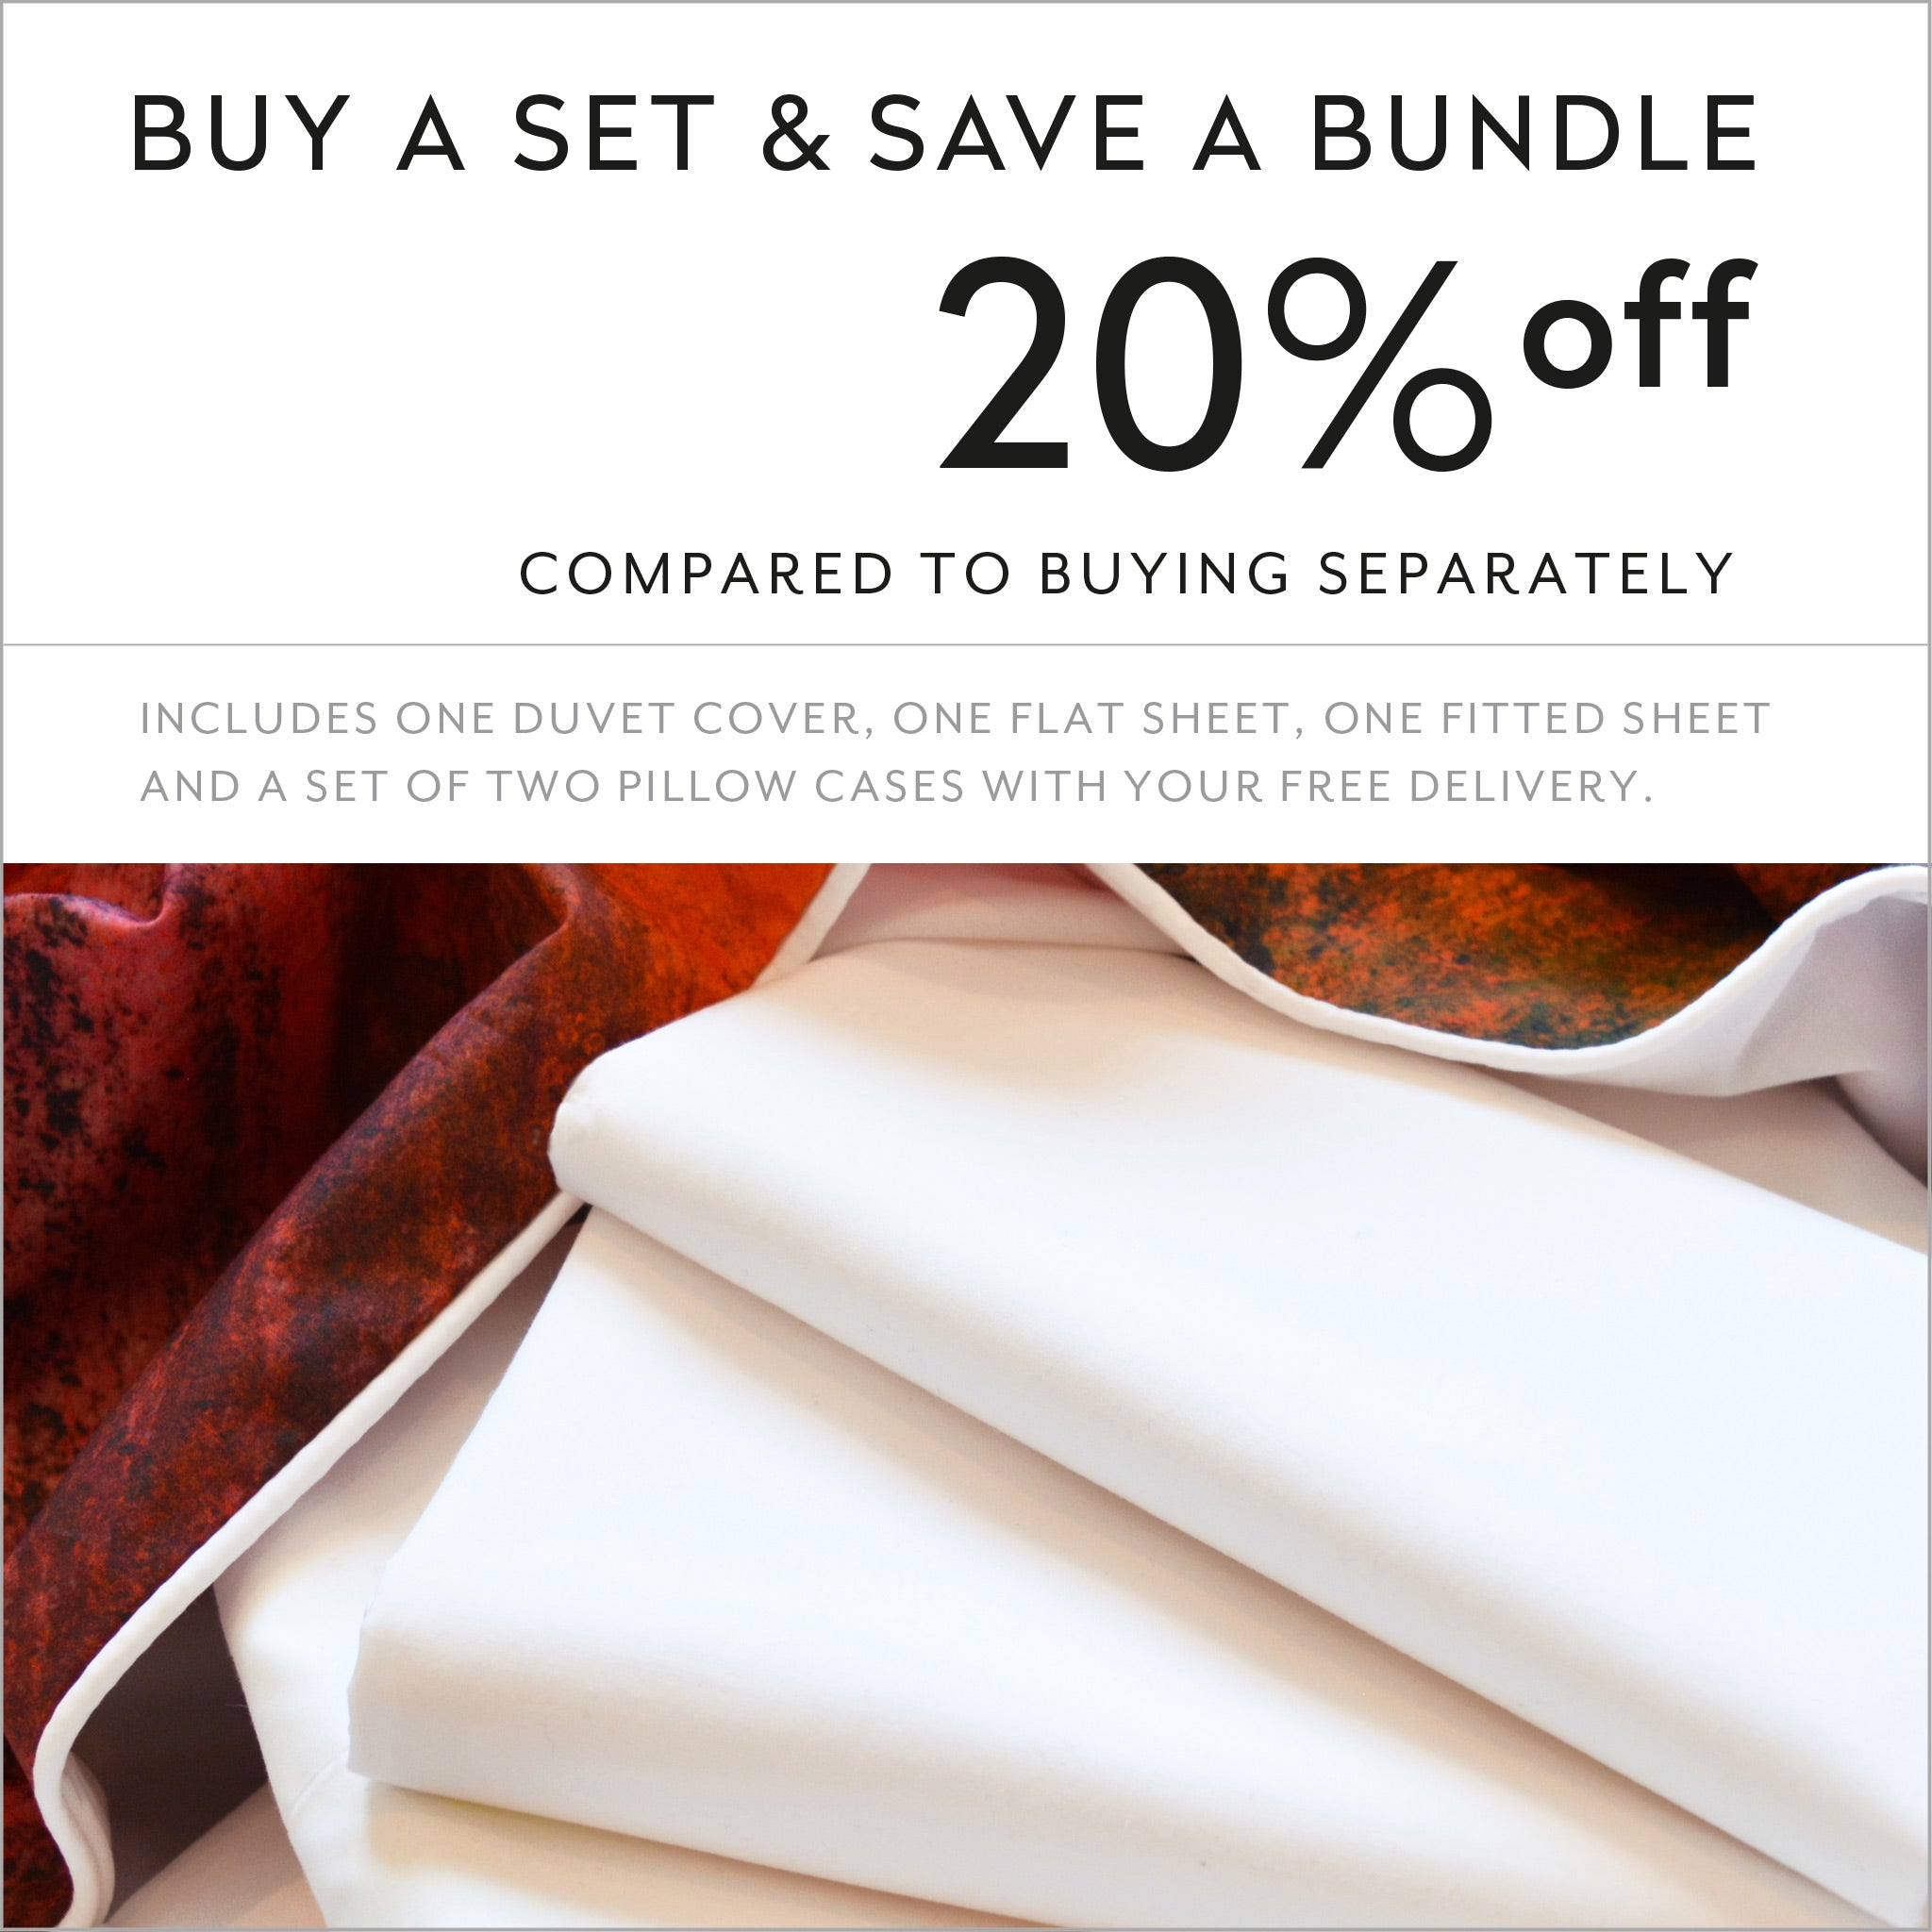 Buy a set and save 20% compared to buying separately cotton sheets and duvet cover design Volcano